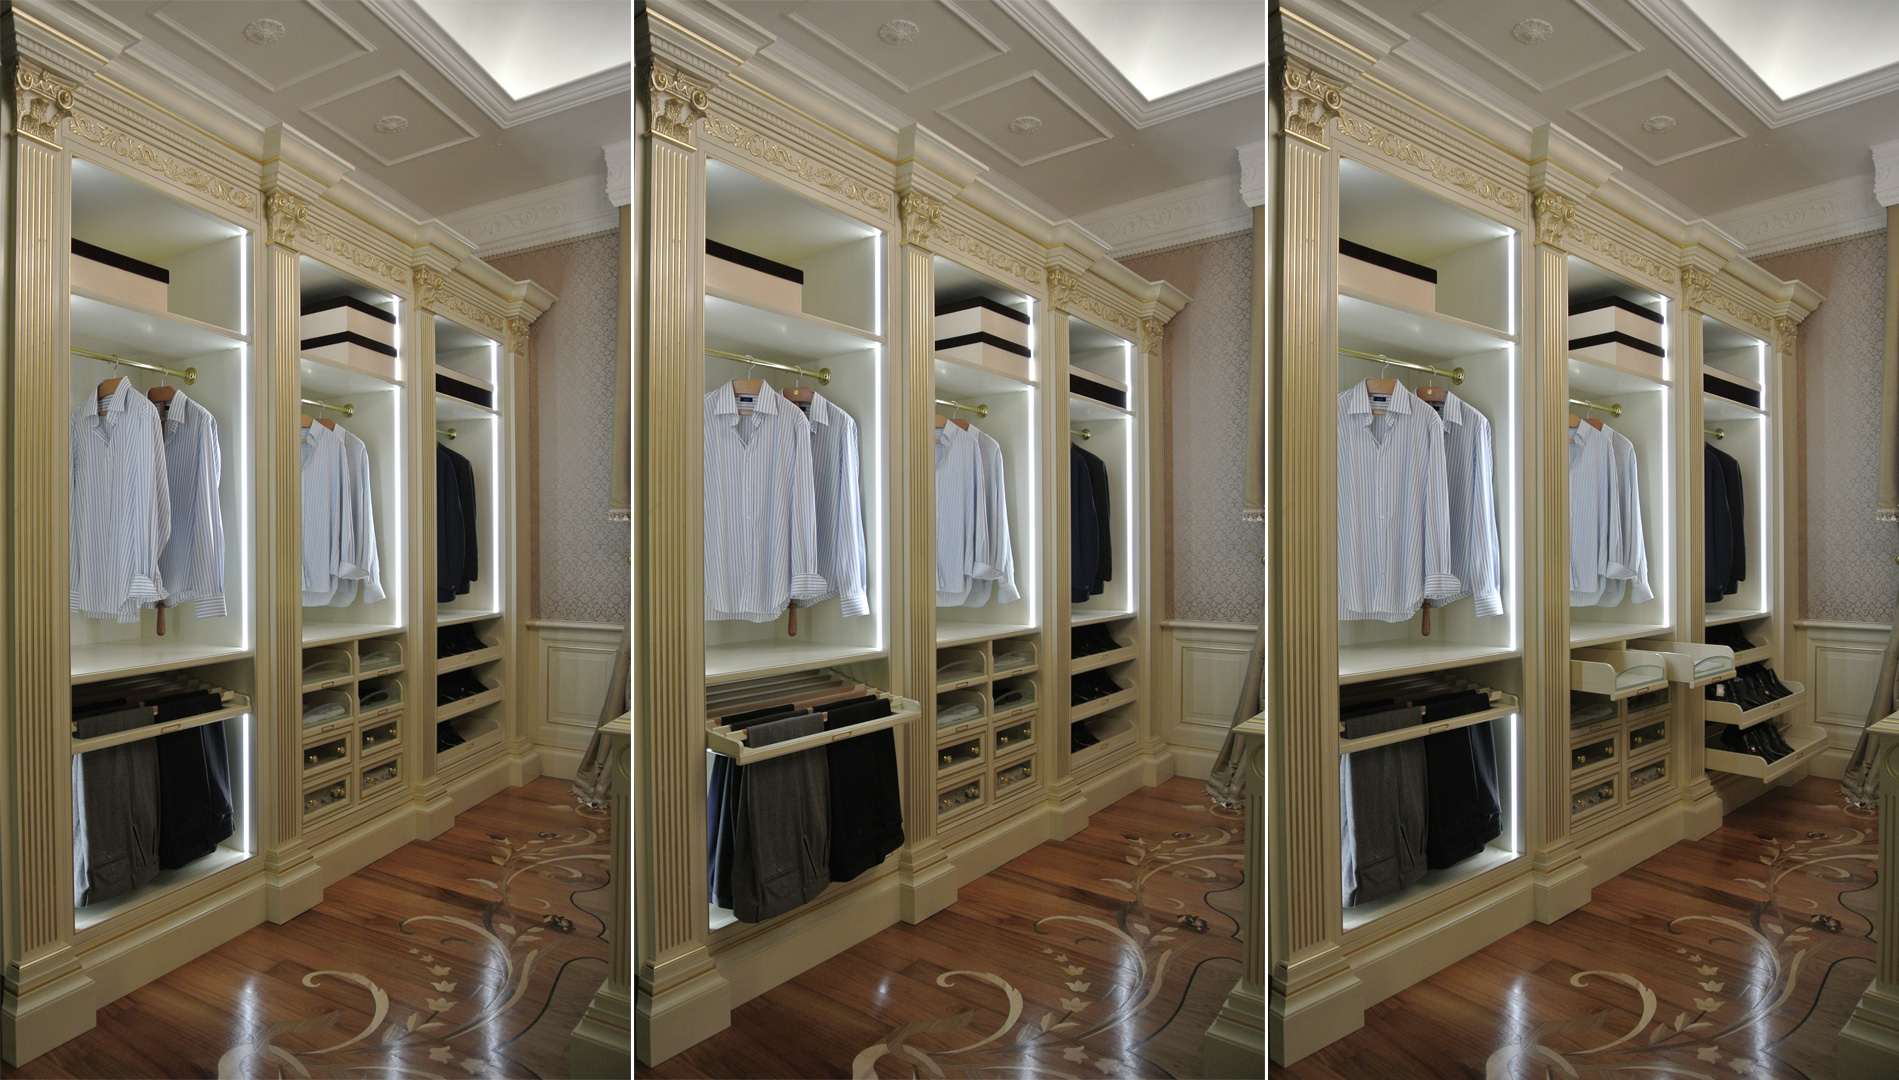 General view of the internal components of the wardrobe.